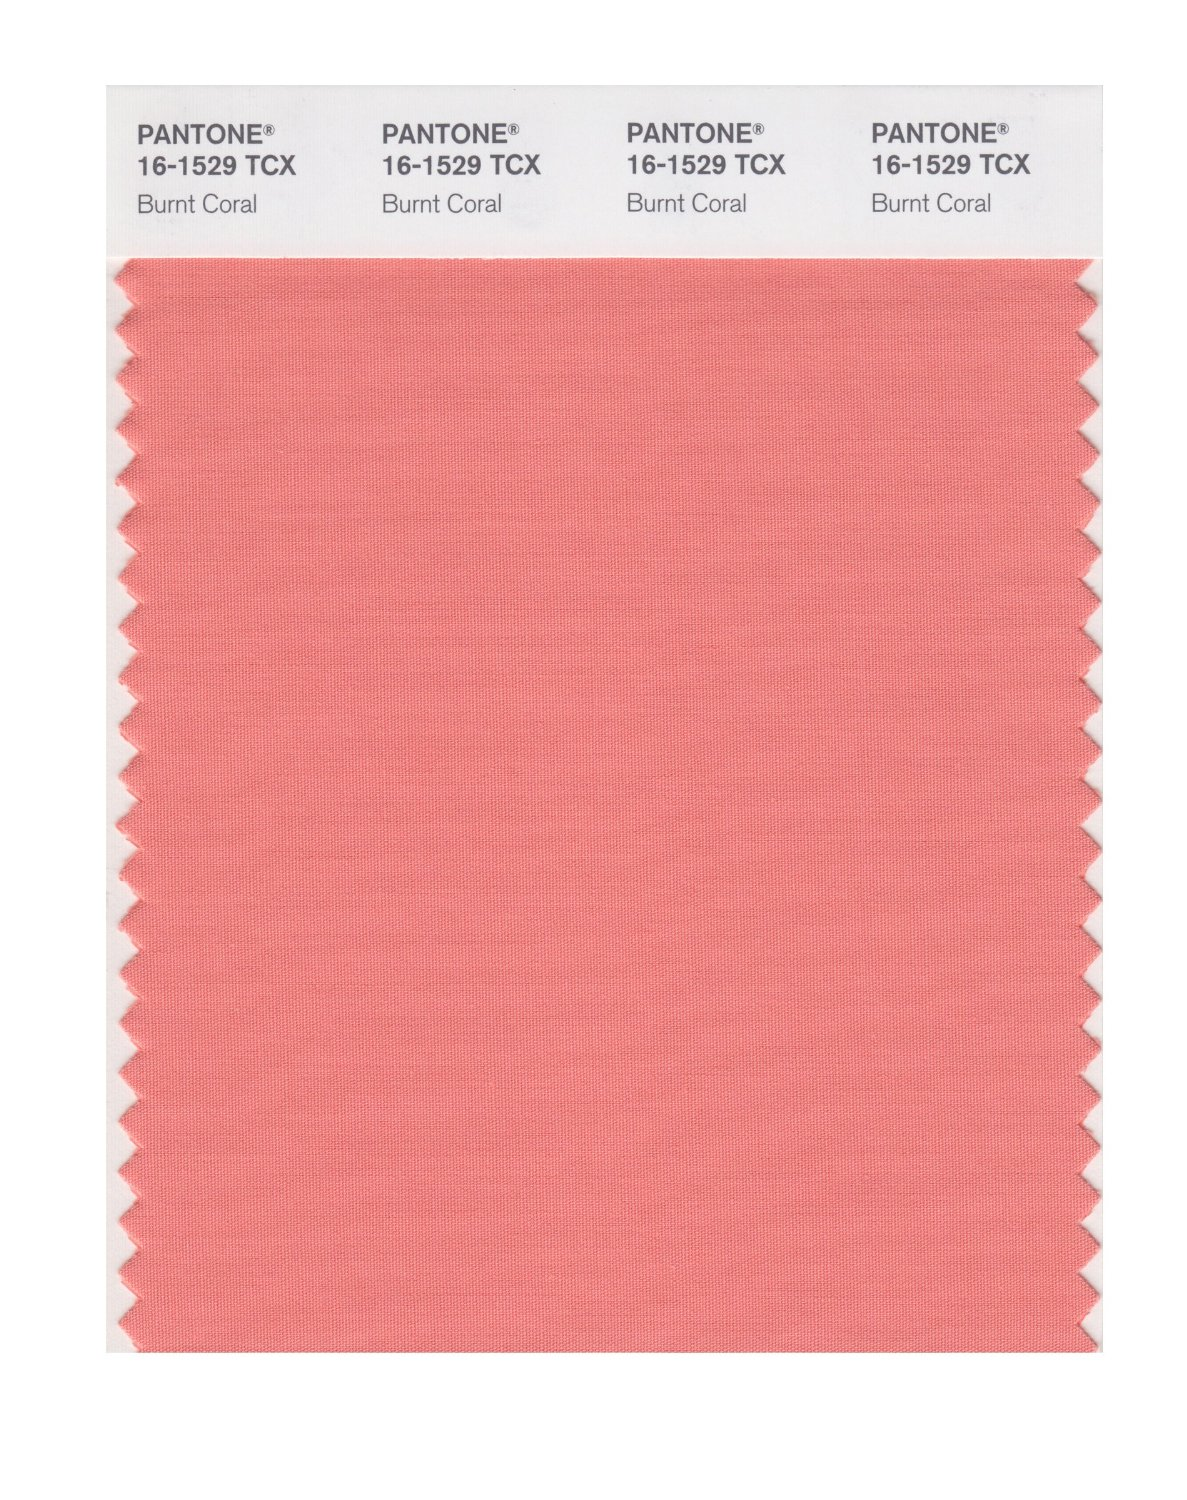 Pantone Smart Swatch 16-1529 Burnt Coral